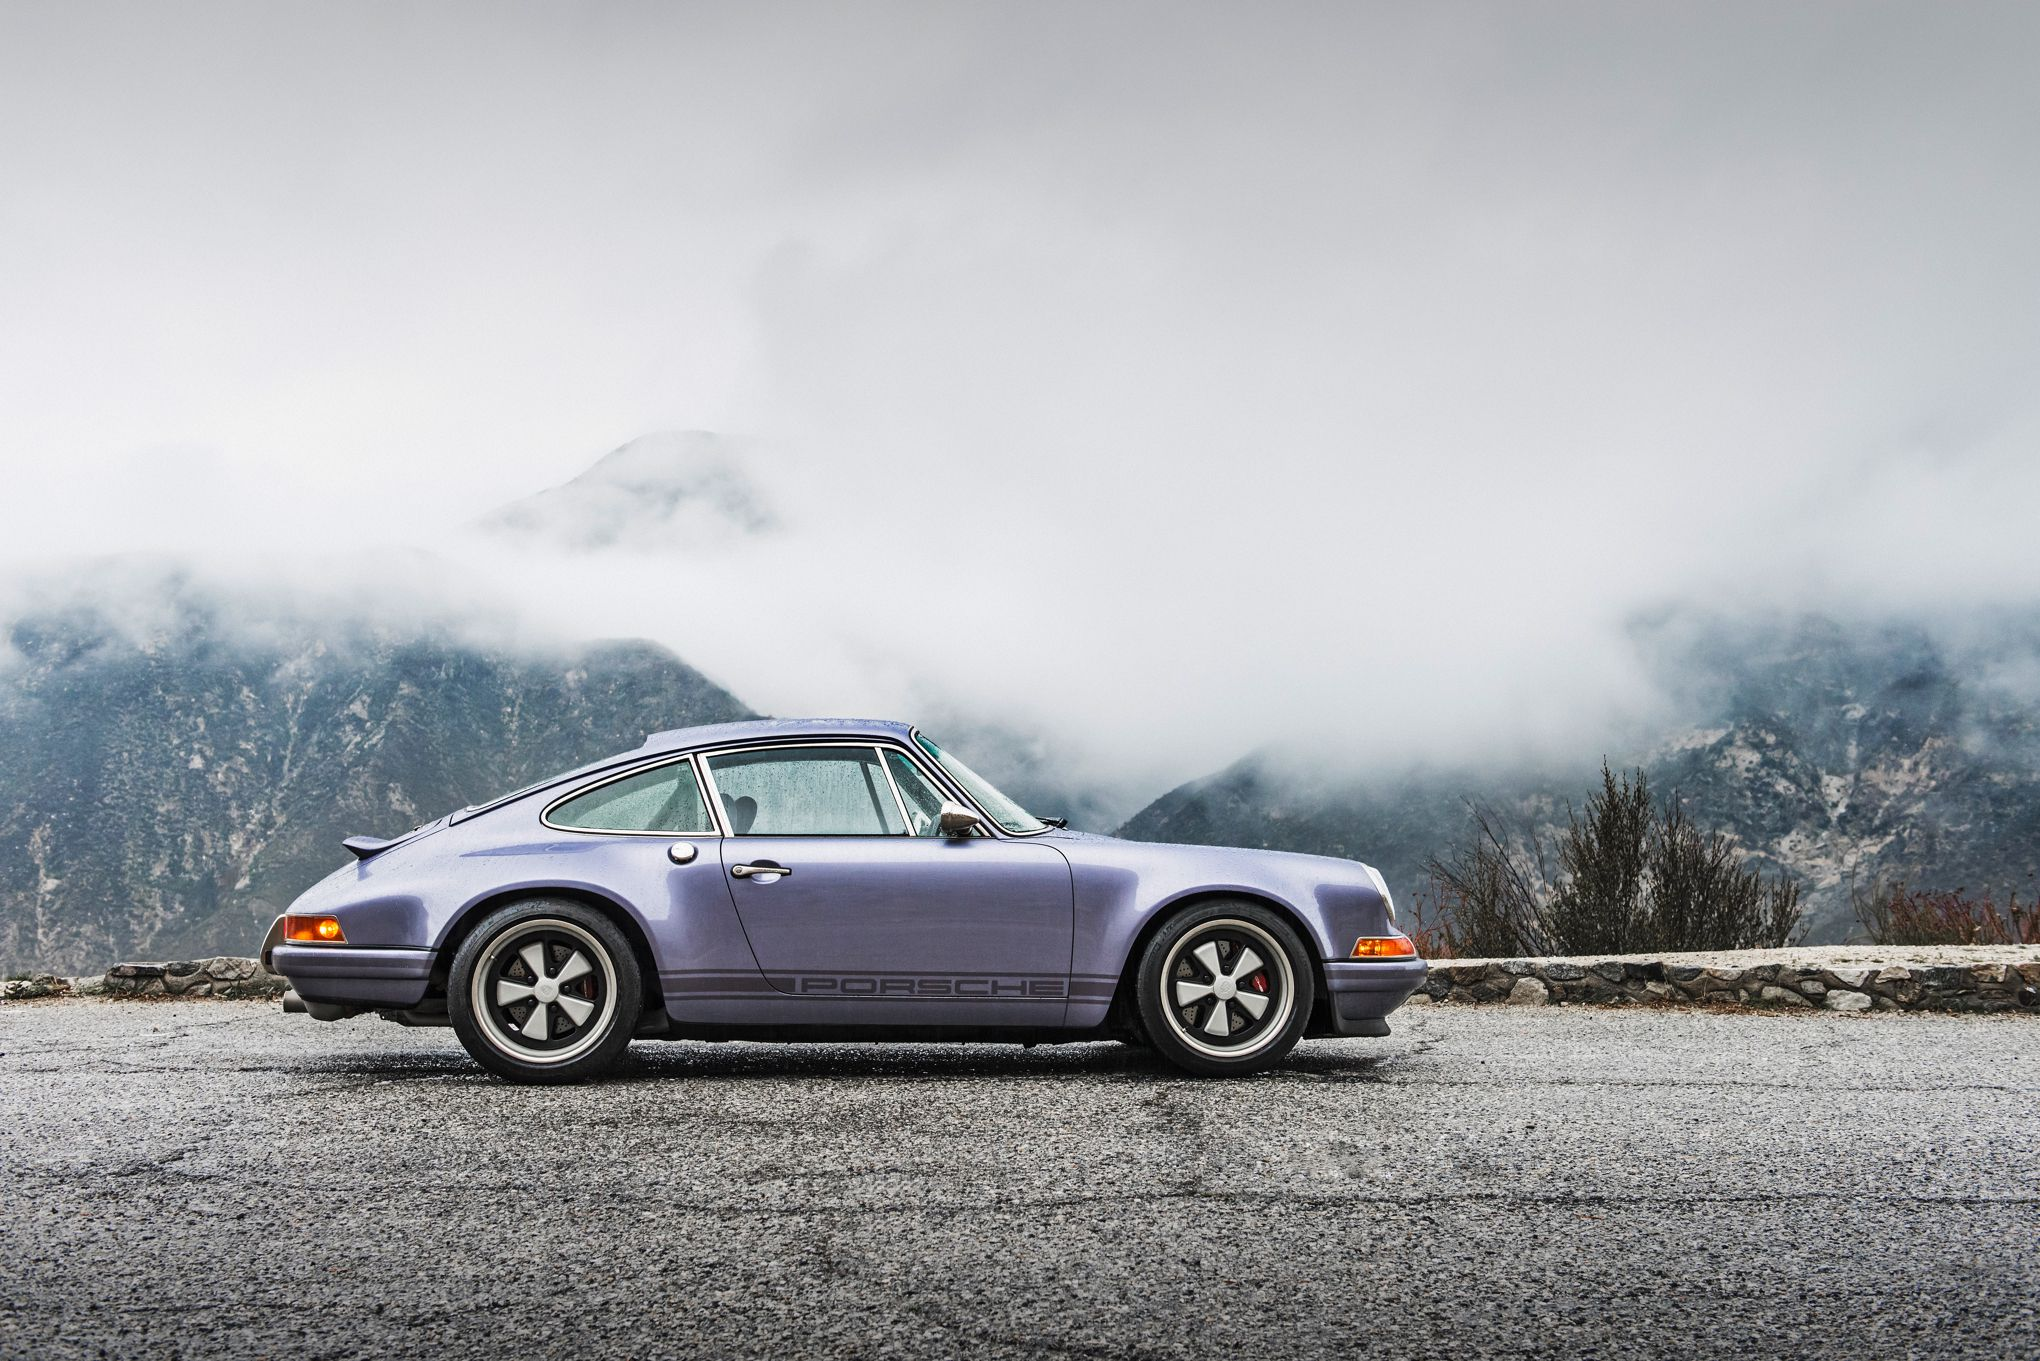 The Porsche 911, reimagined | The Verge